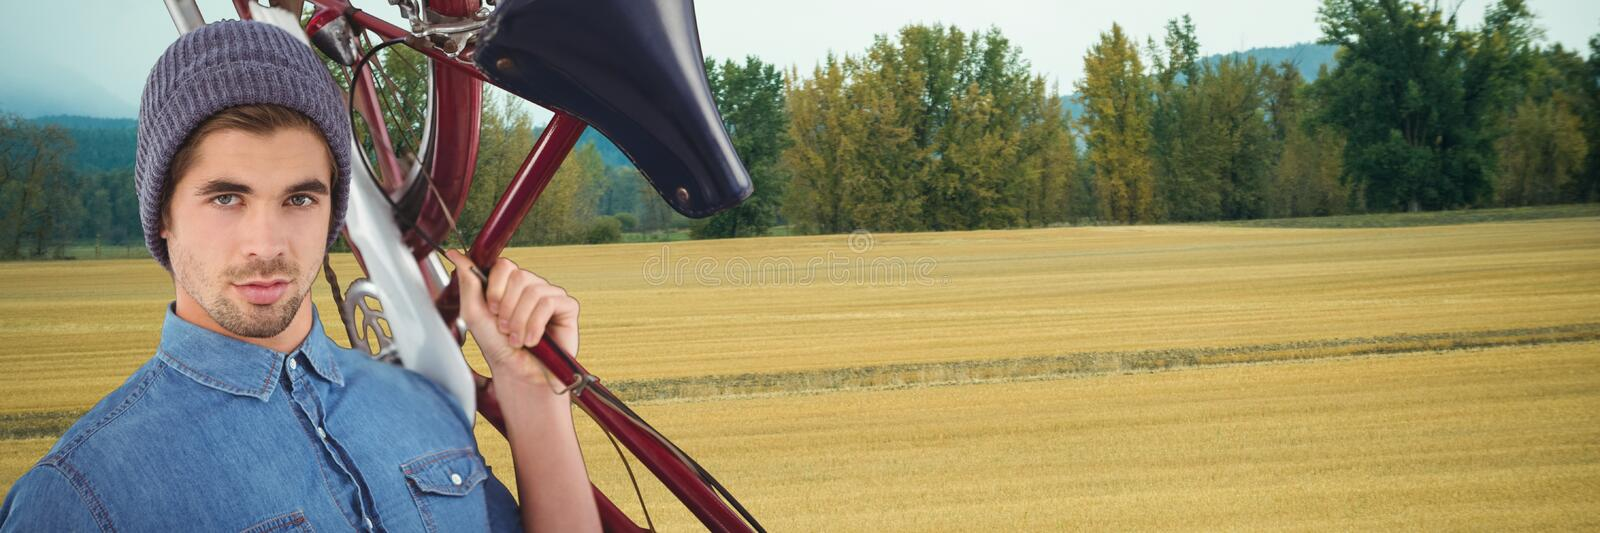 Millennial man holding bicycle against field stock photo